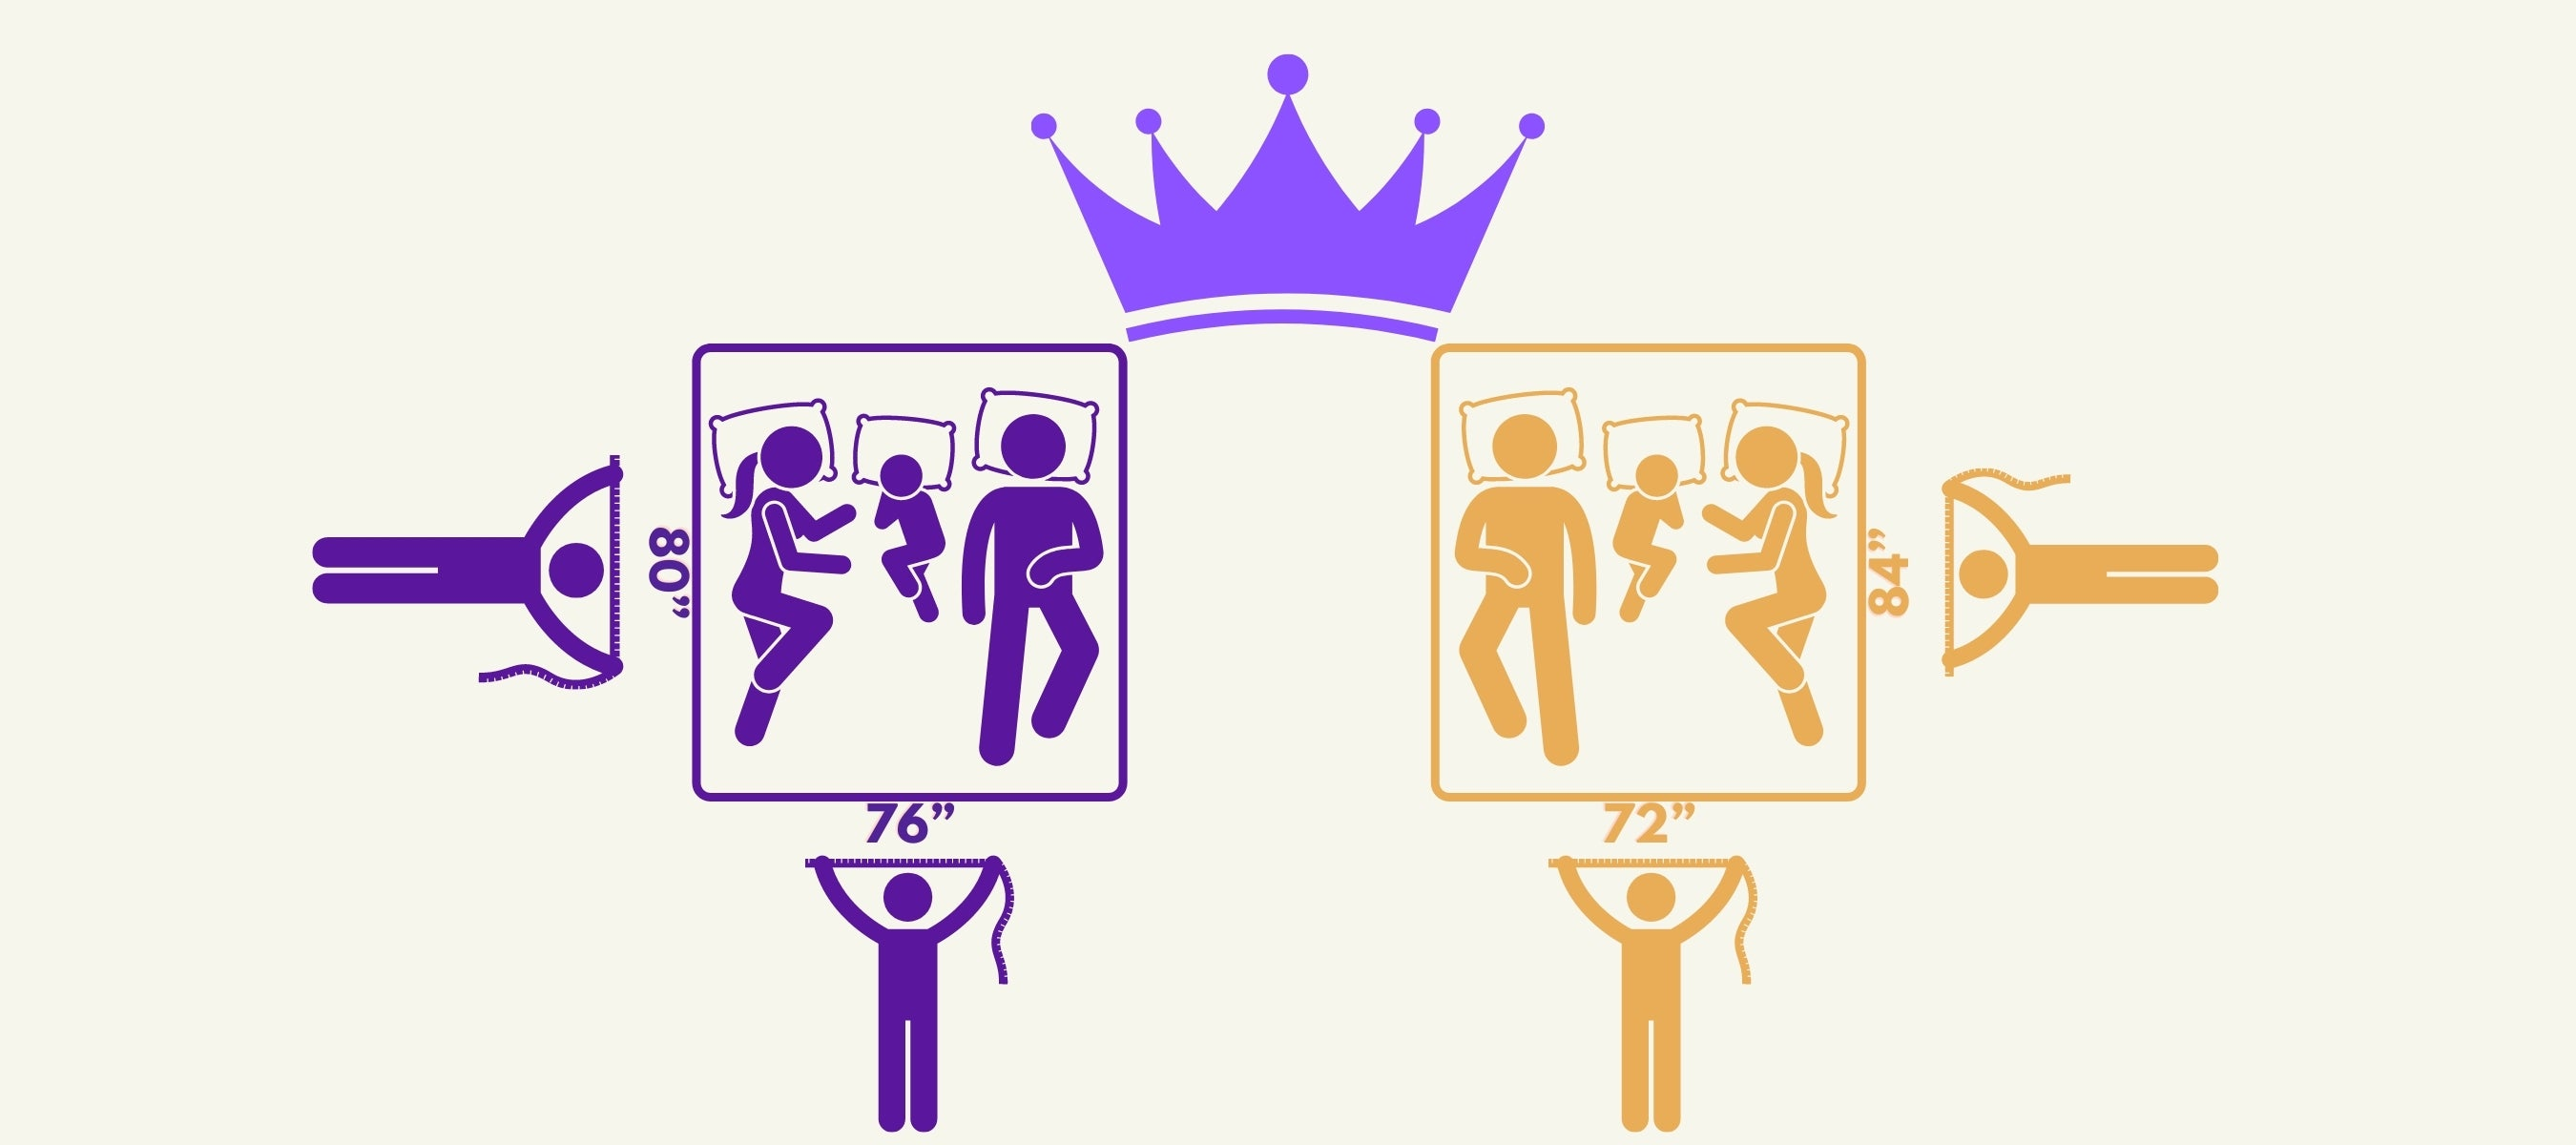 Two stick figures each measuring the two king beds color purple and orange facing each other with a crown above